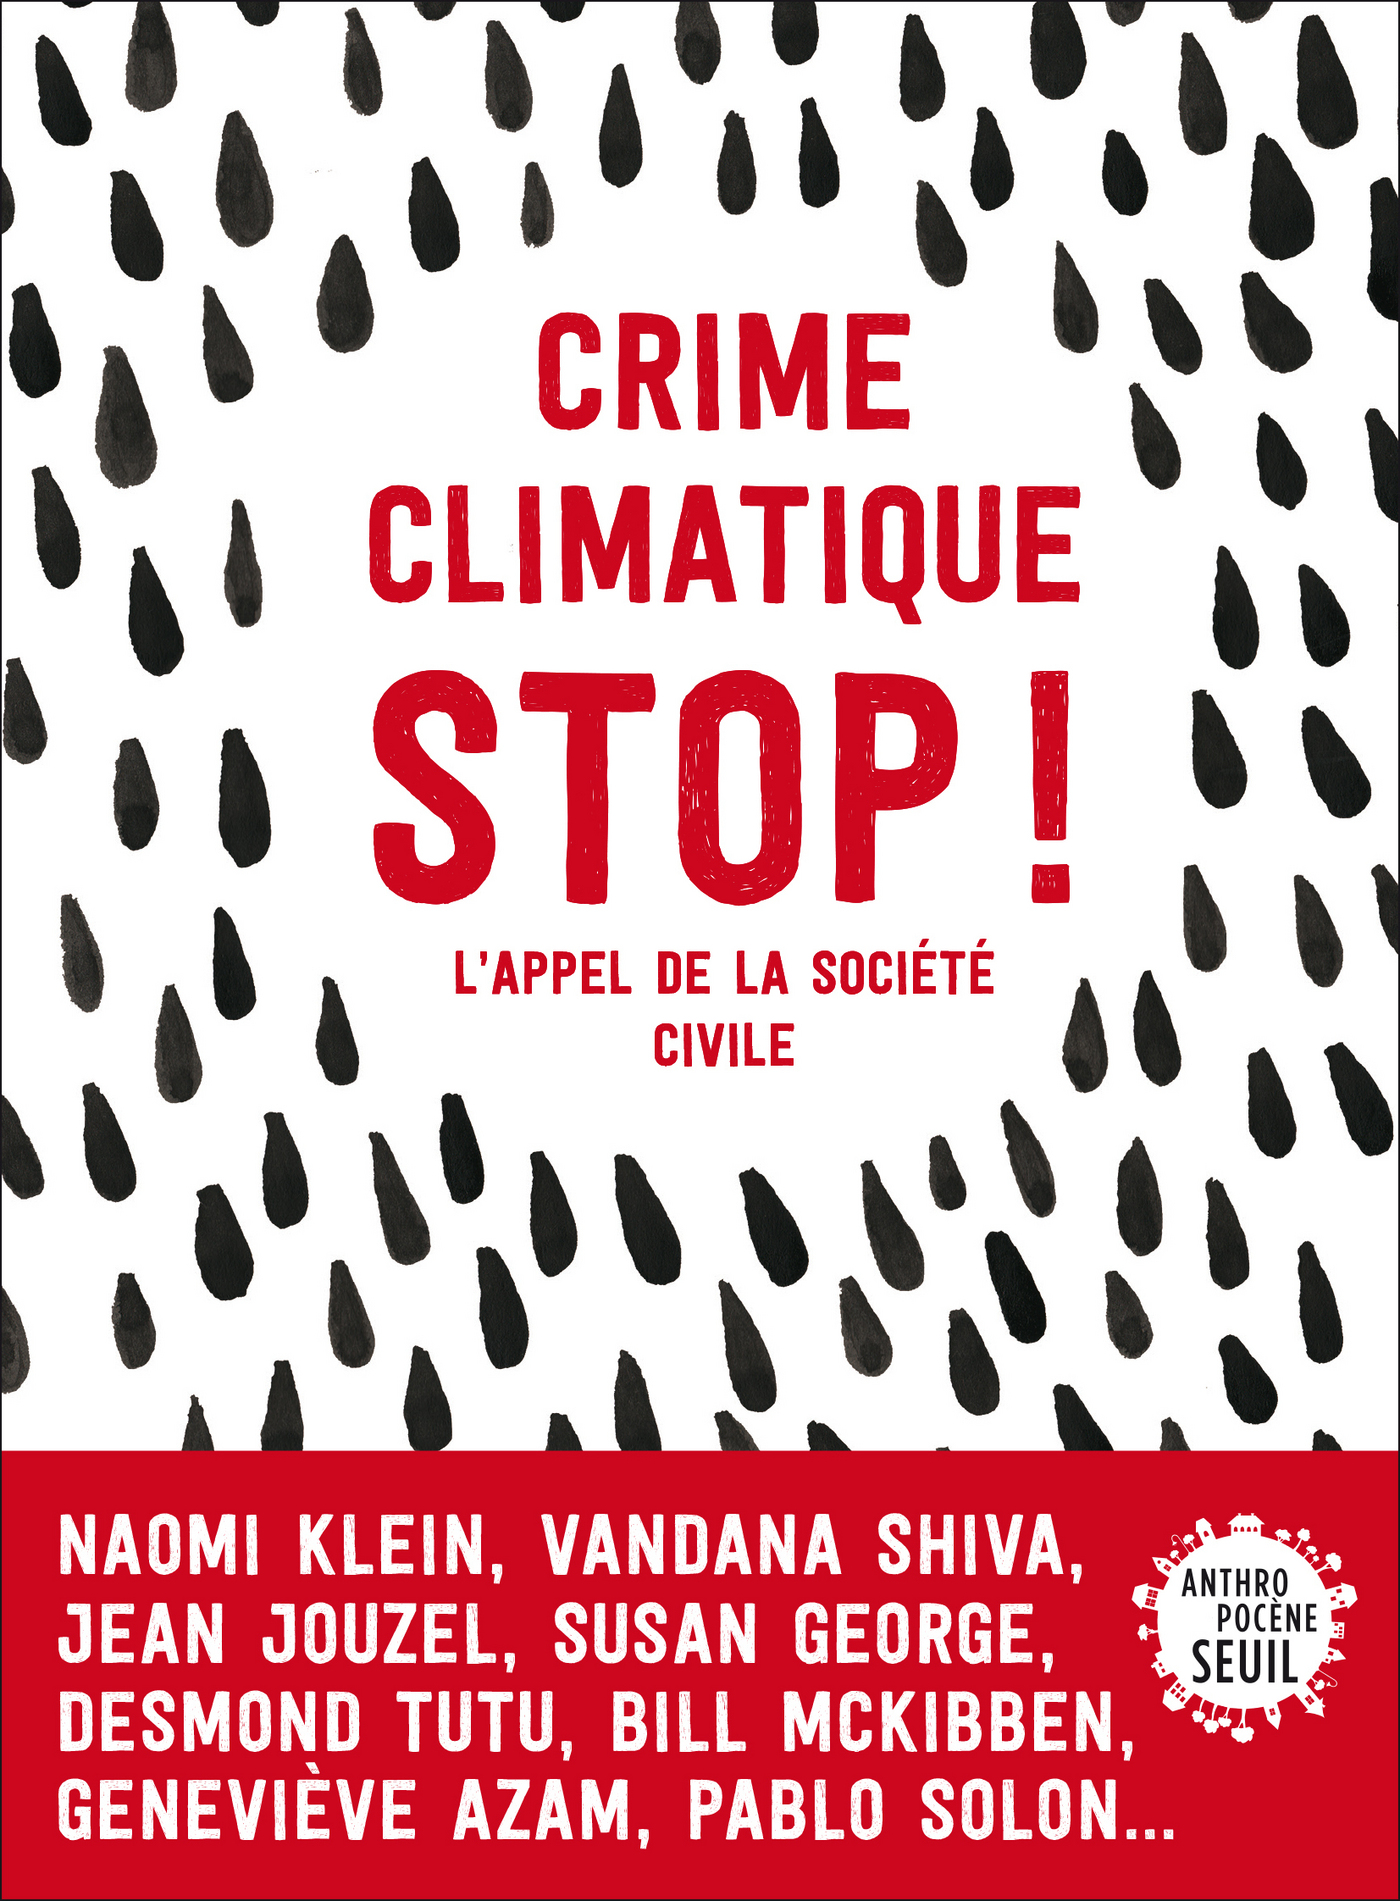 Crime climatique stop !. L'appel de la soci?t? civile